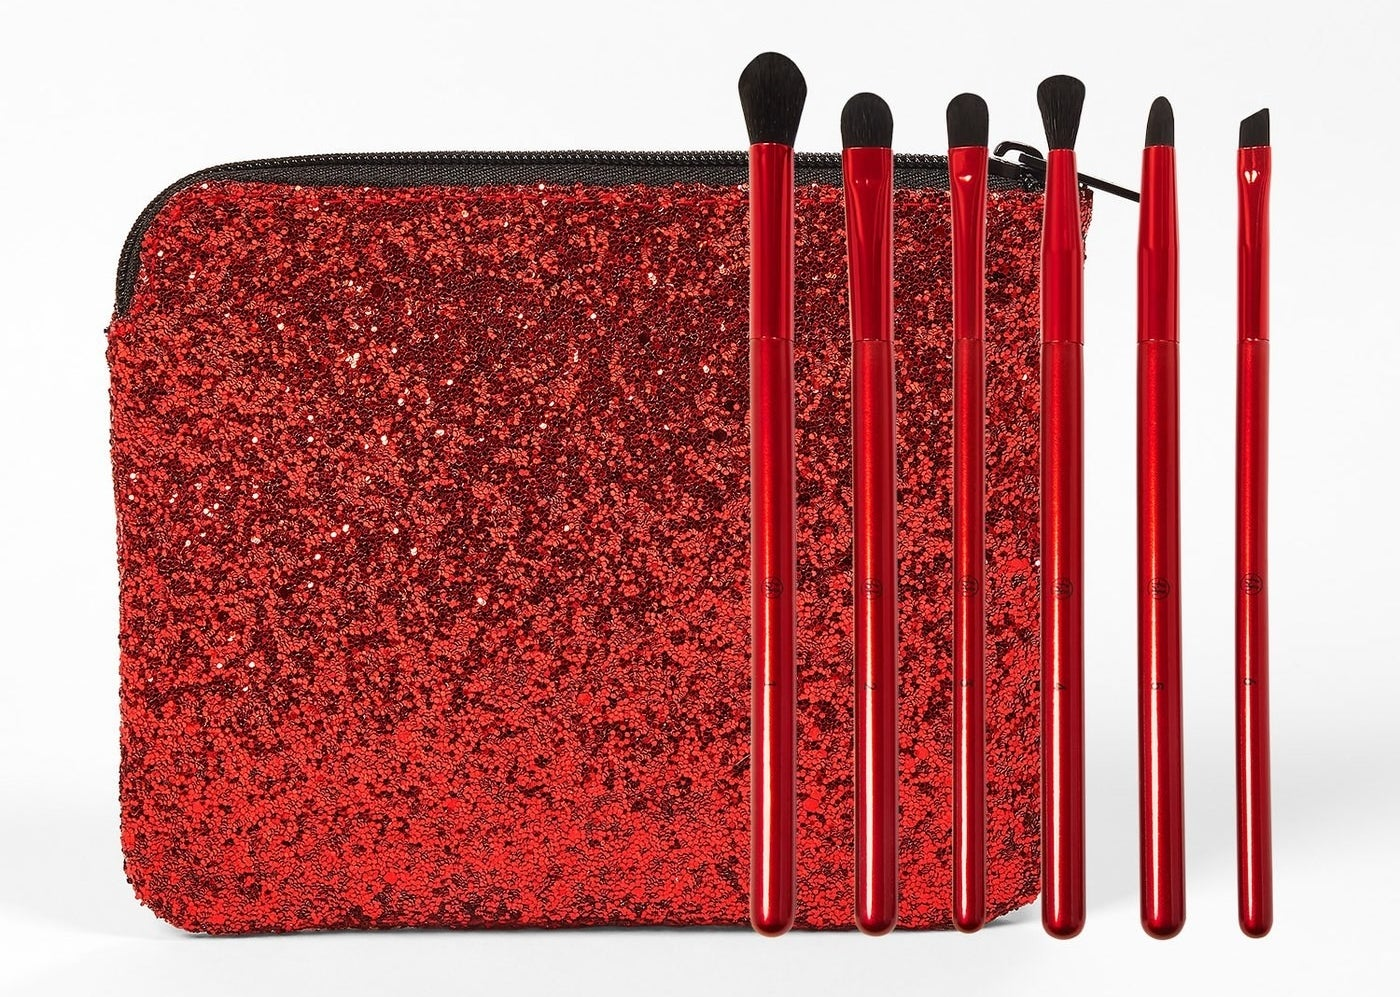 The brushes and case